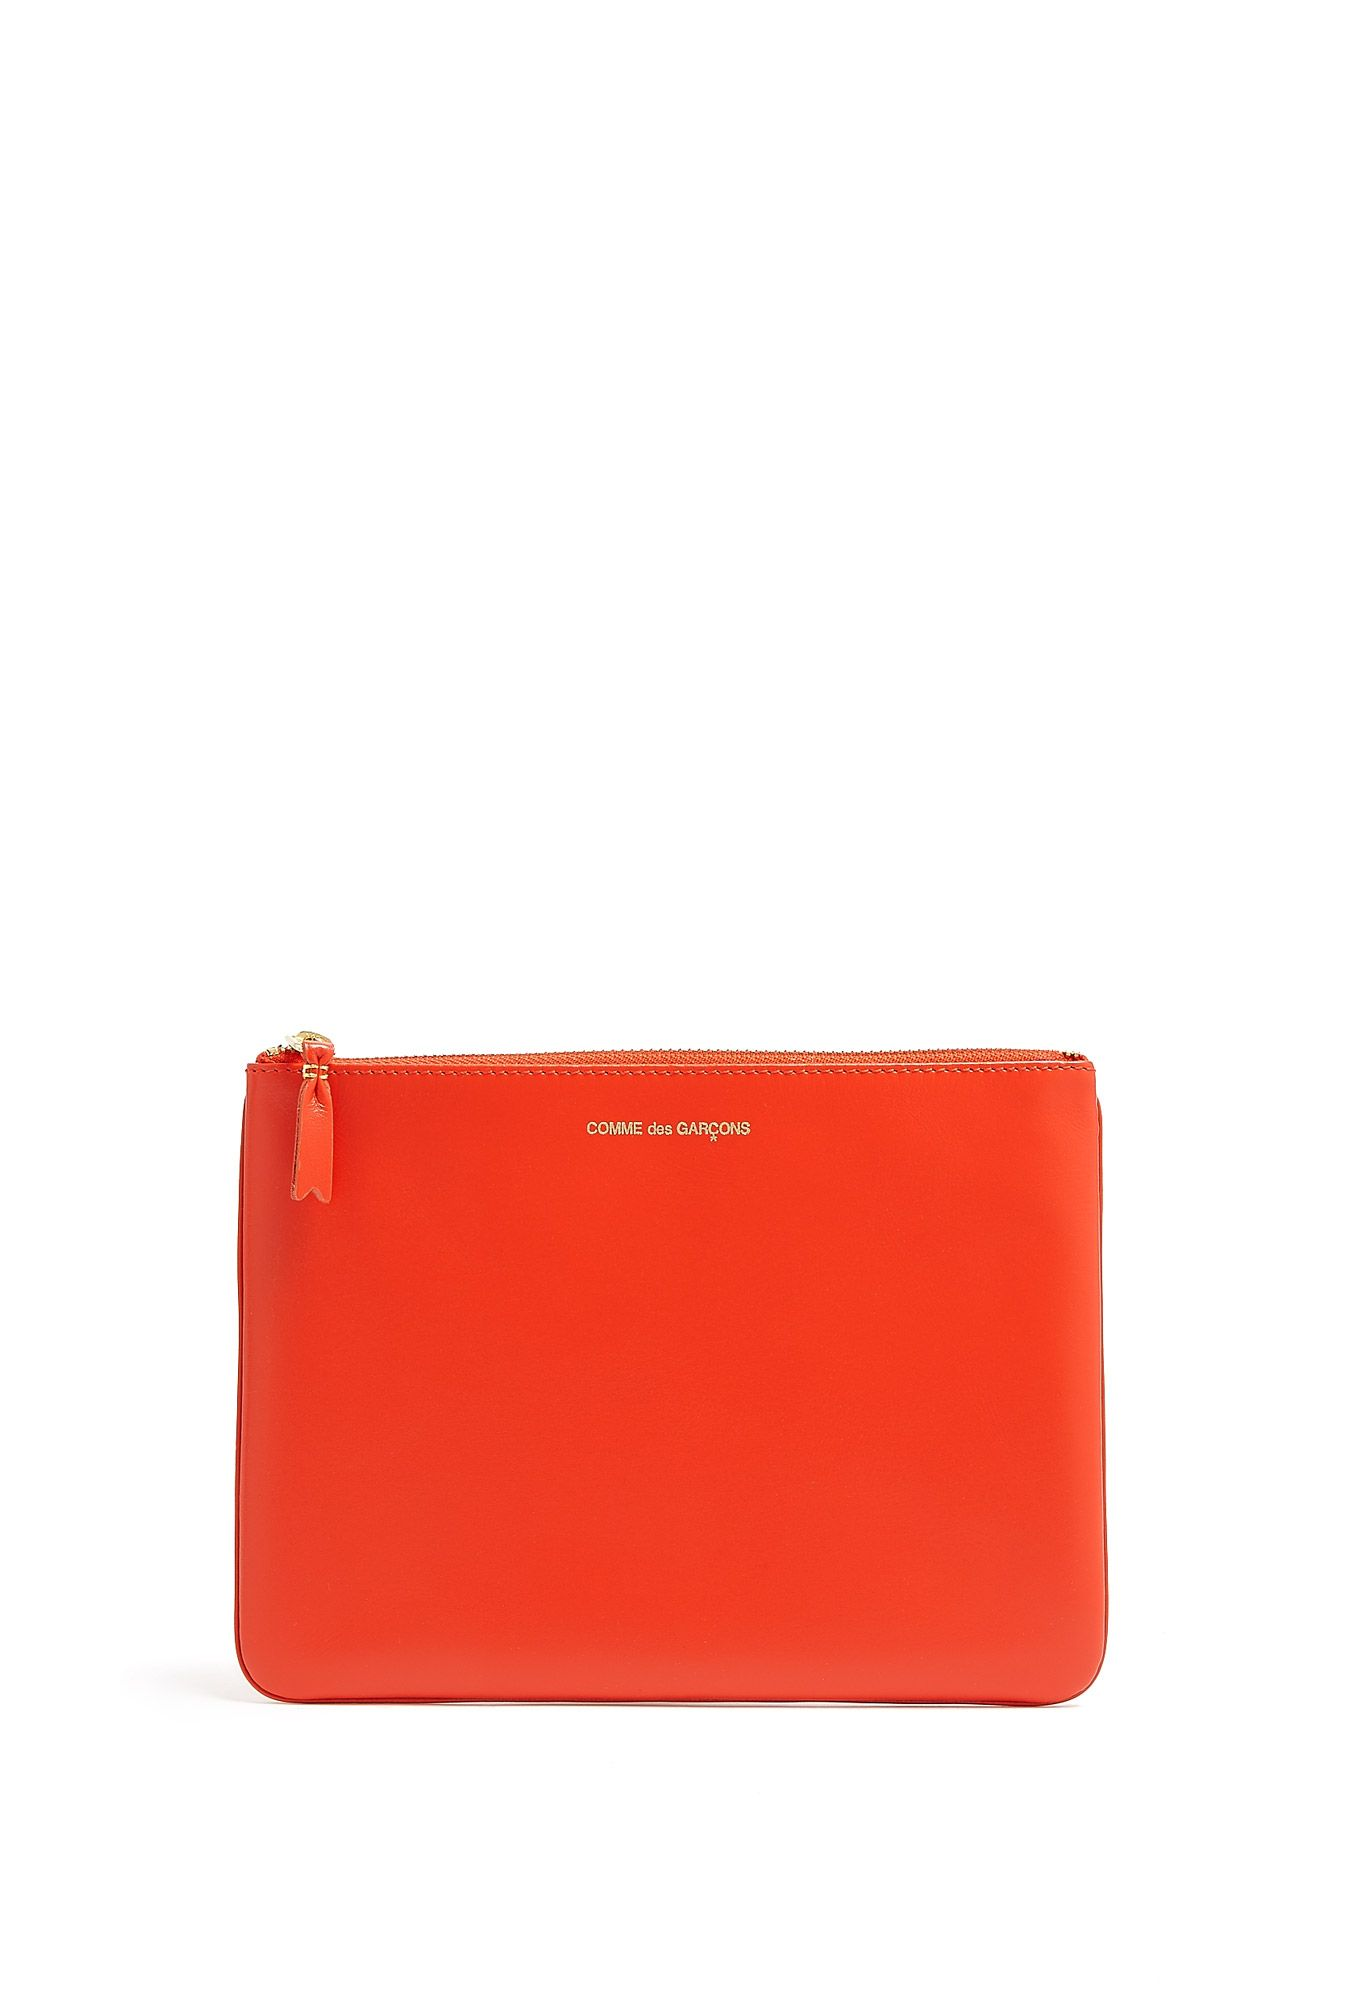 Orange Classic Zip Pouch Comme Des Garçons Largest Supplier iqcQlsV